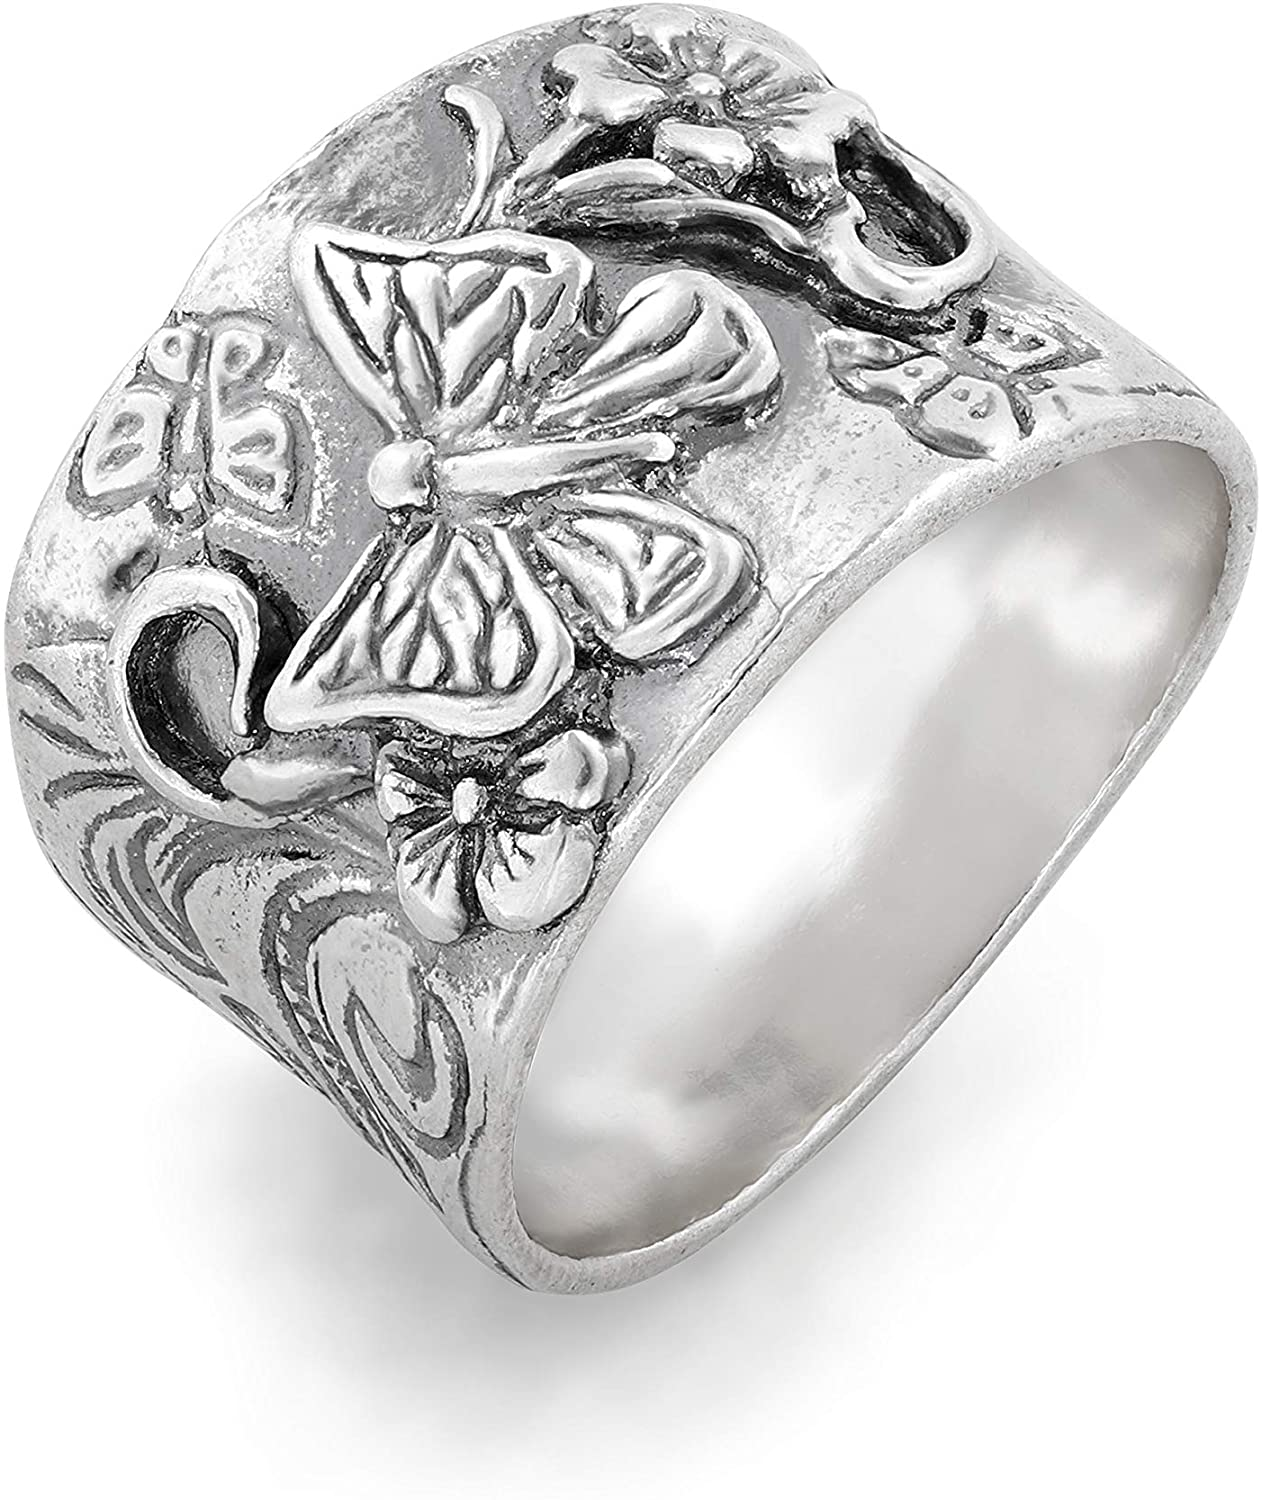 PZ Paz Creations 925 Sterling Silver Butterfly Floral Band Ring for Women | Vintage Style Statement Bohemian Jewelry Gift | Unique Artisan Fashion Chunky Rings